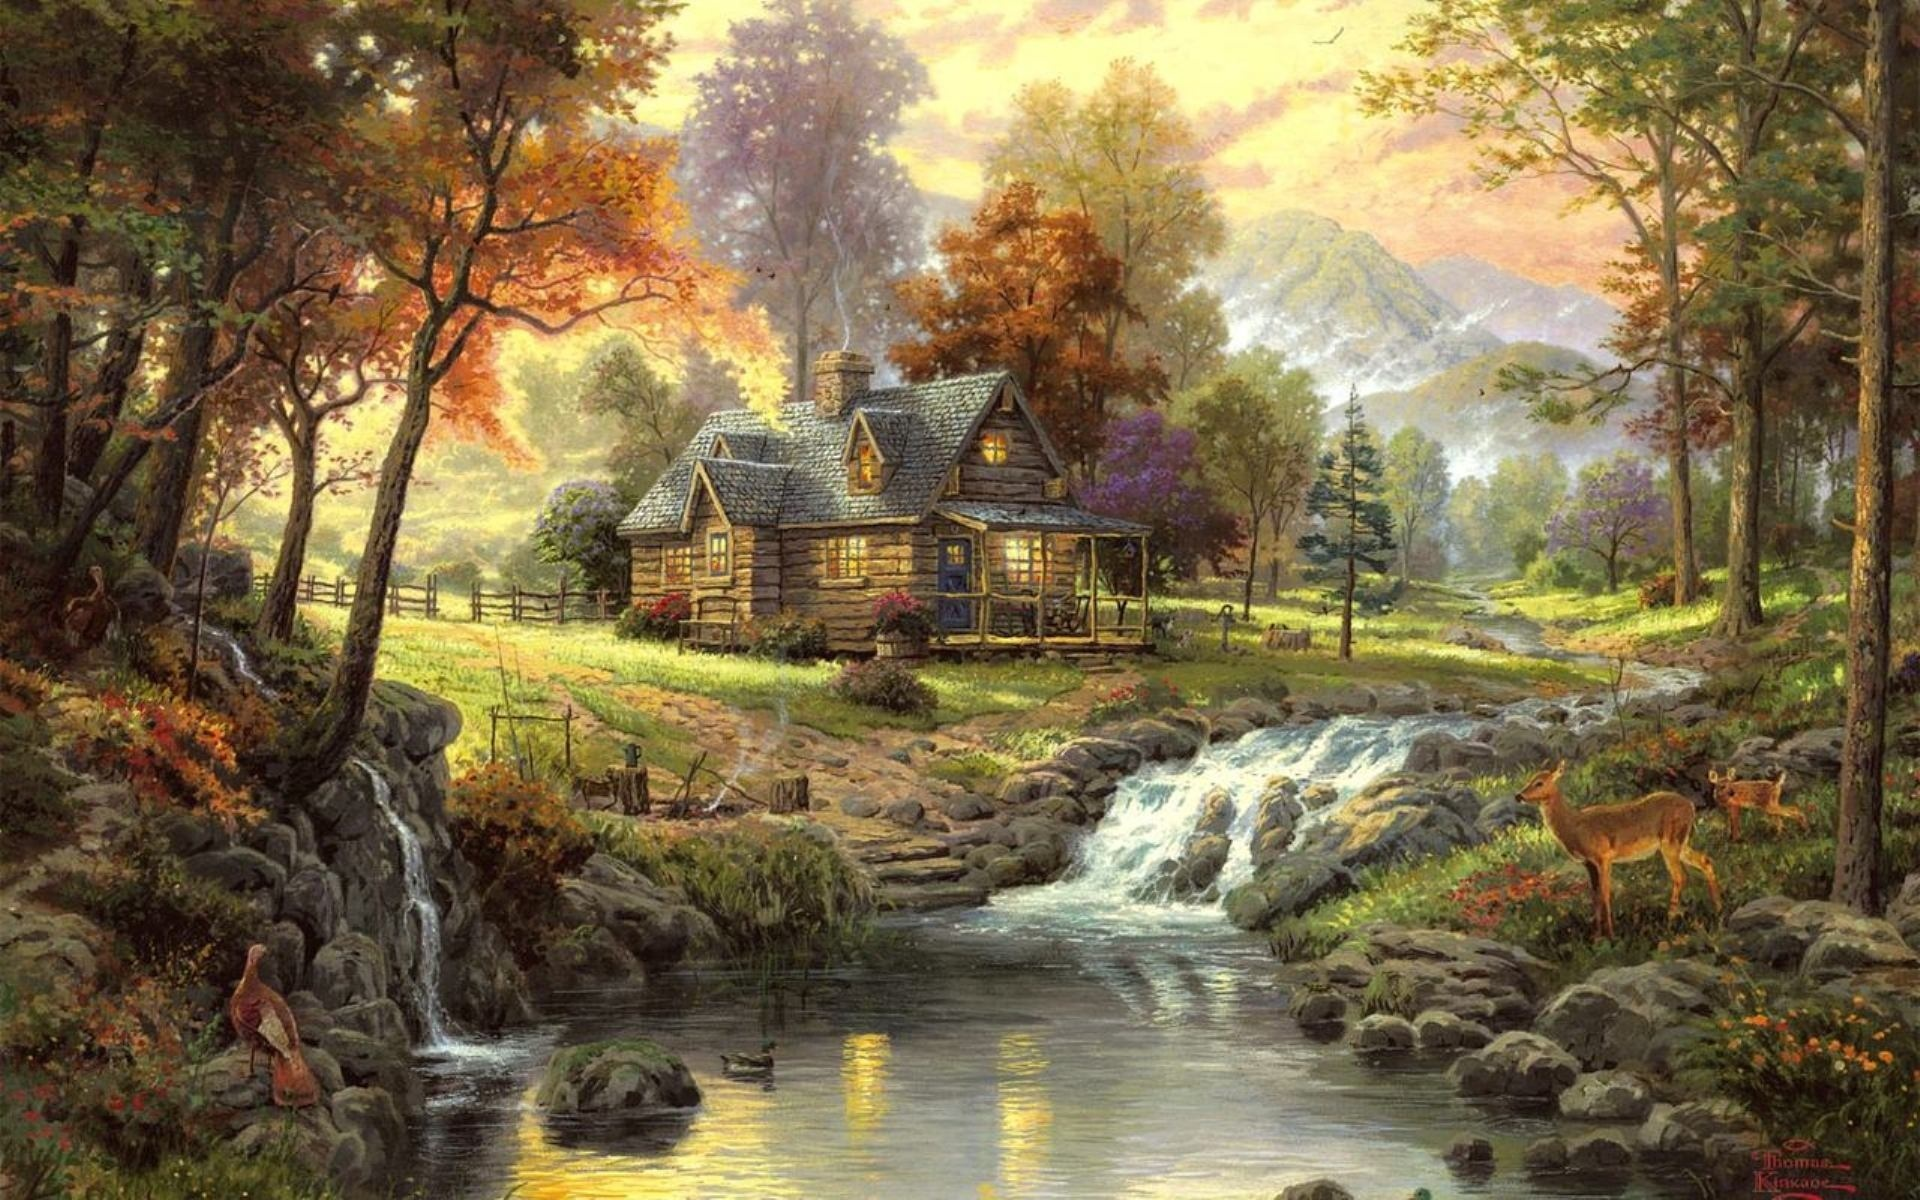 Waterfalls in the enchanted woods forest fantasy art fairies - Thomas Kinkade Cabin Paintings Car Interior Design